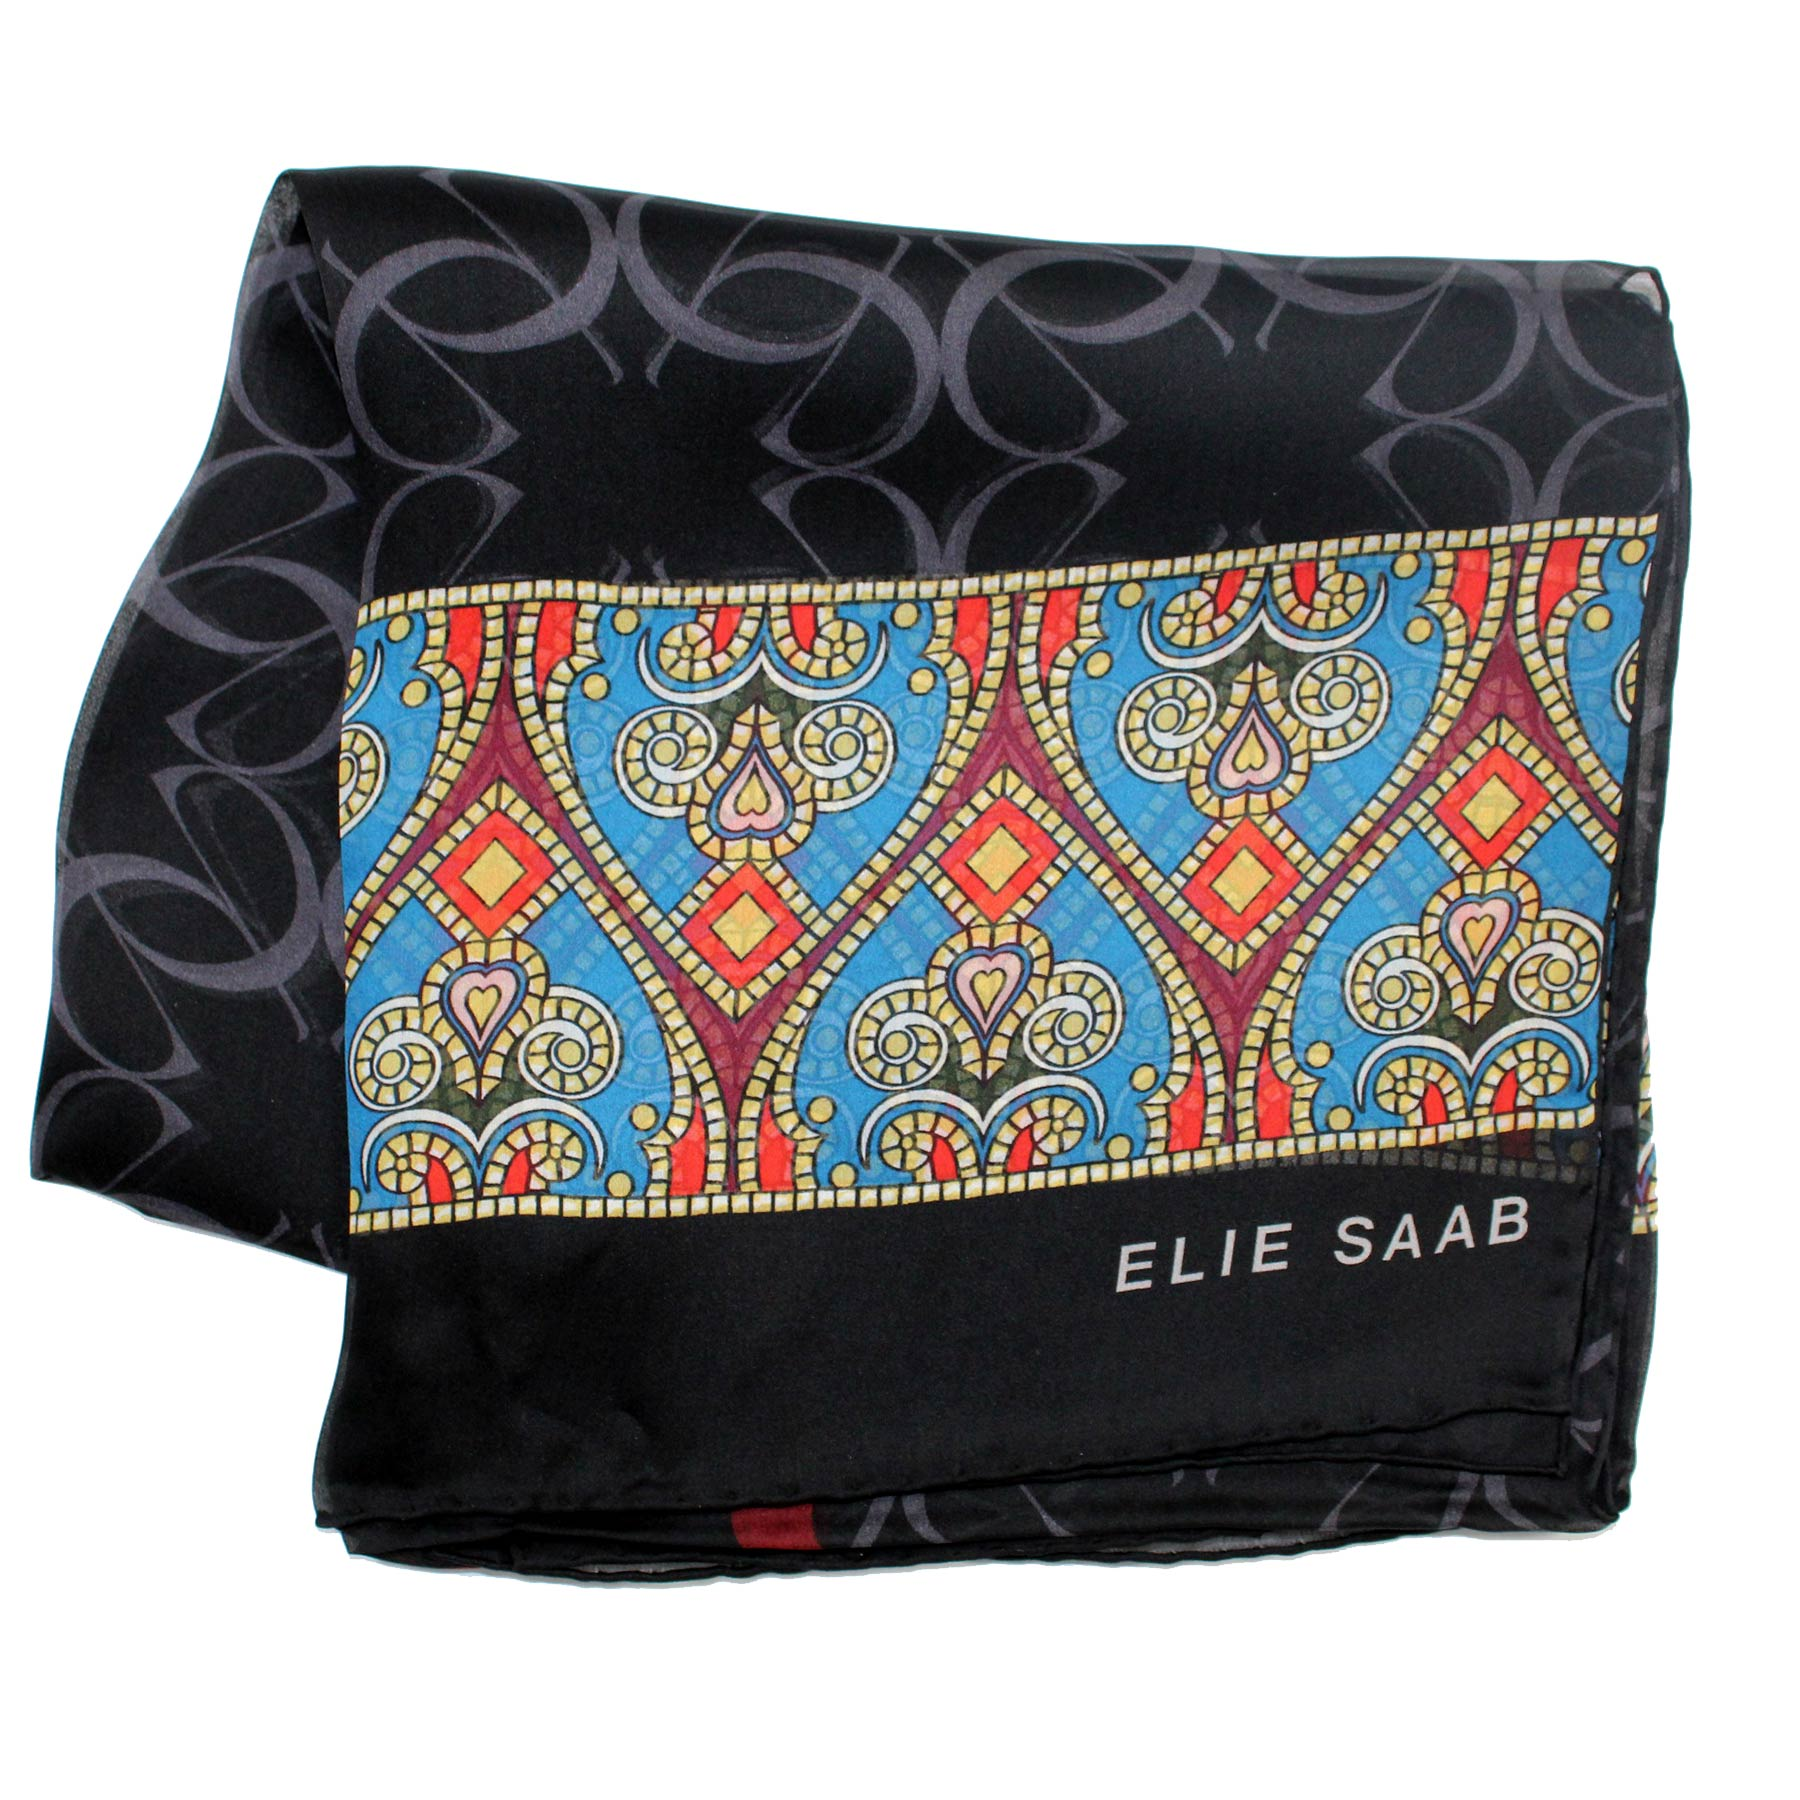 Elie Saab Scarf Black Gray Logo & Hearts Design - Chiffon Silk Shawl